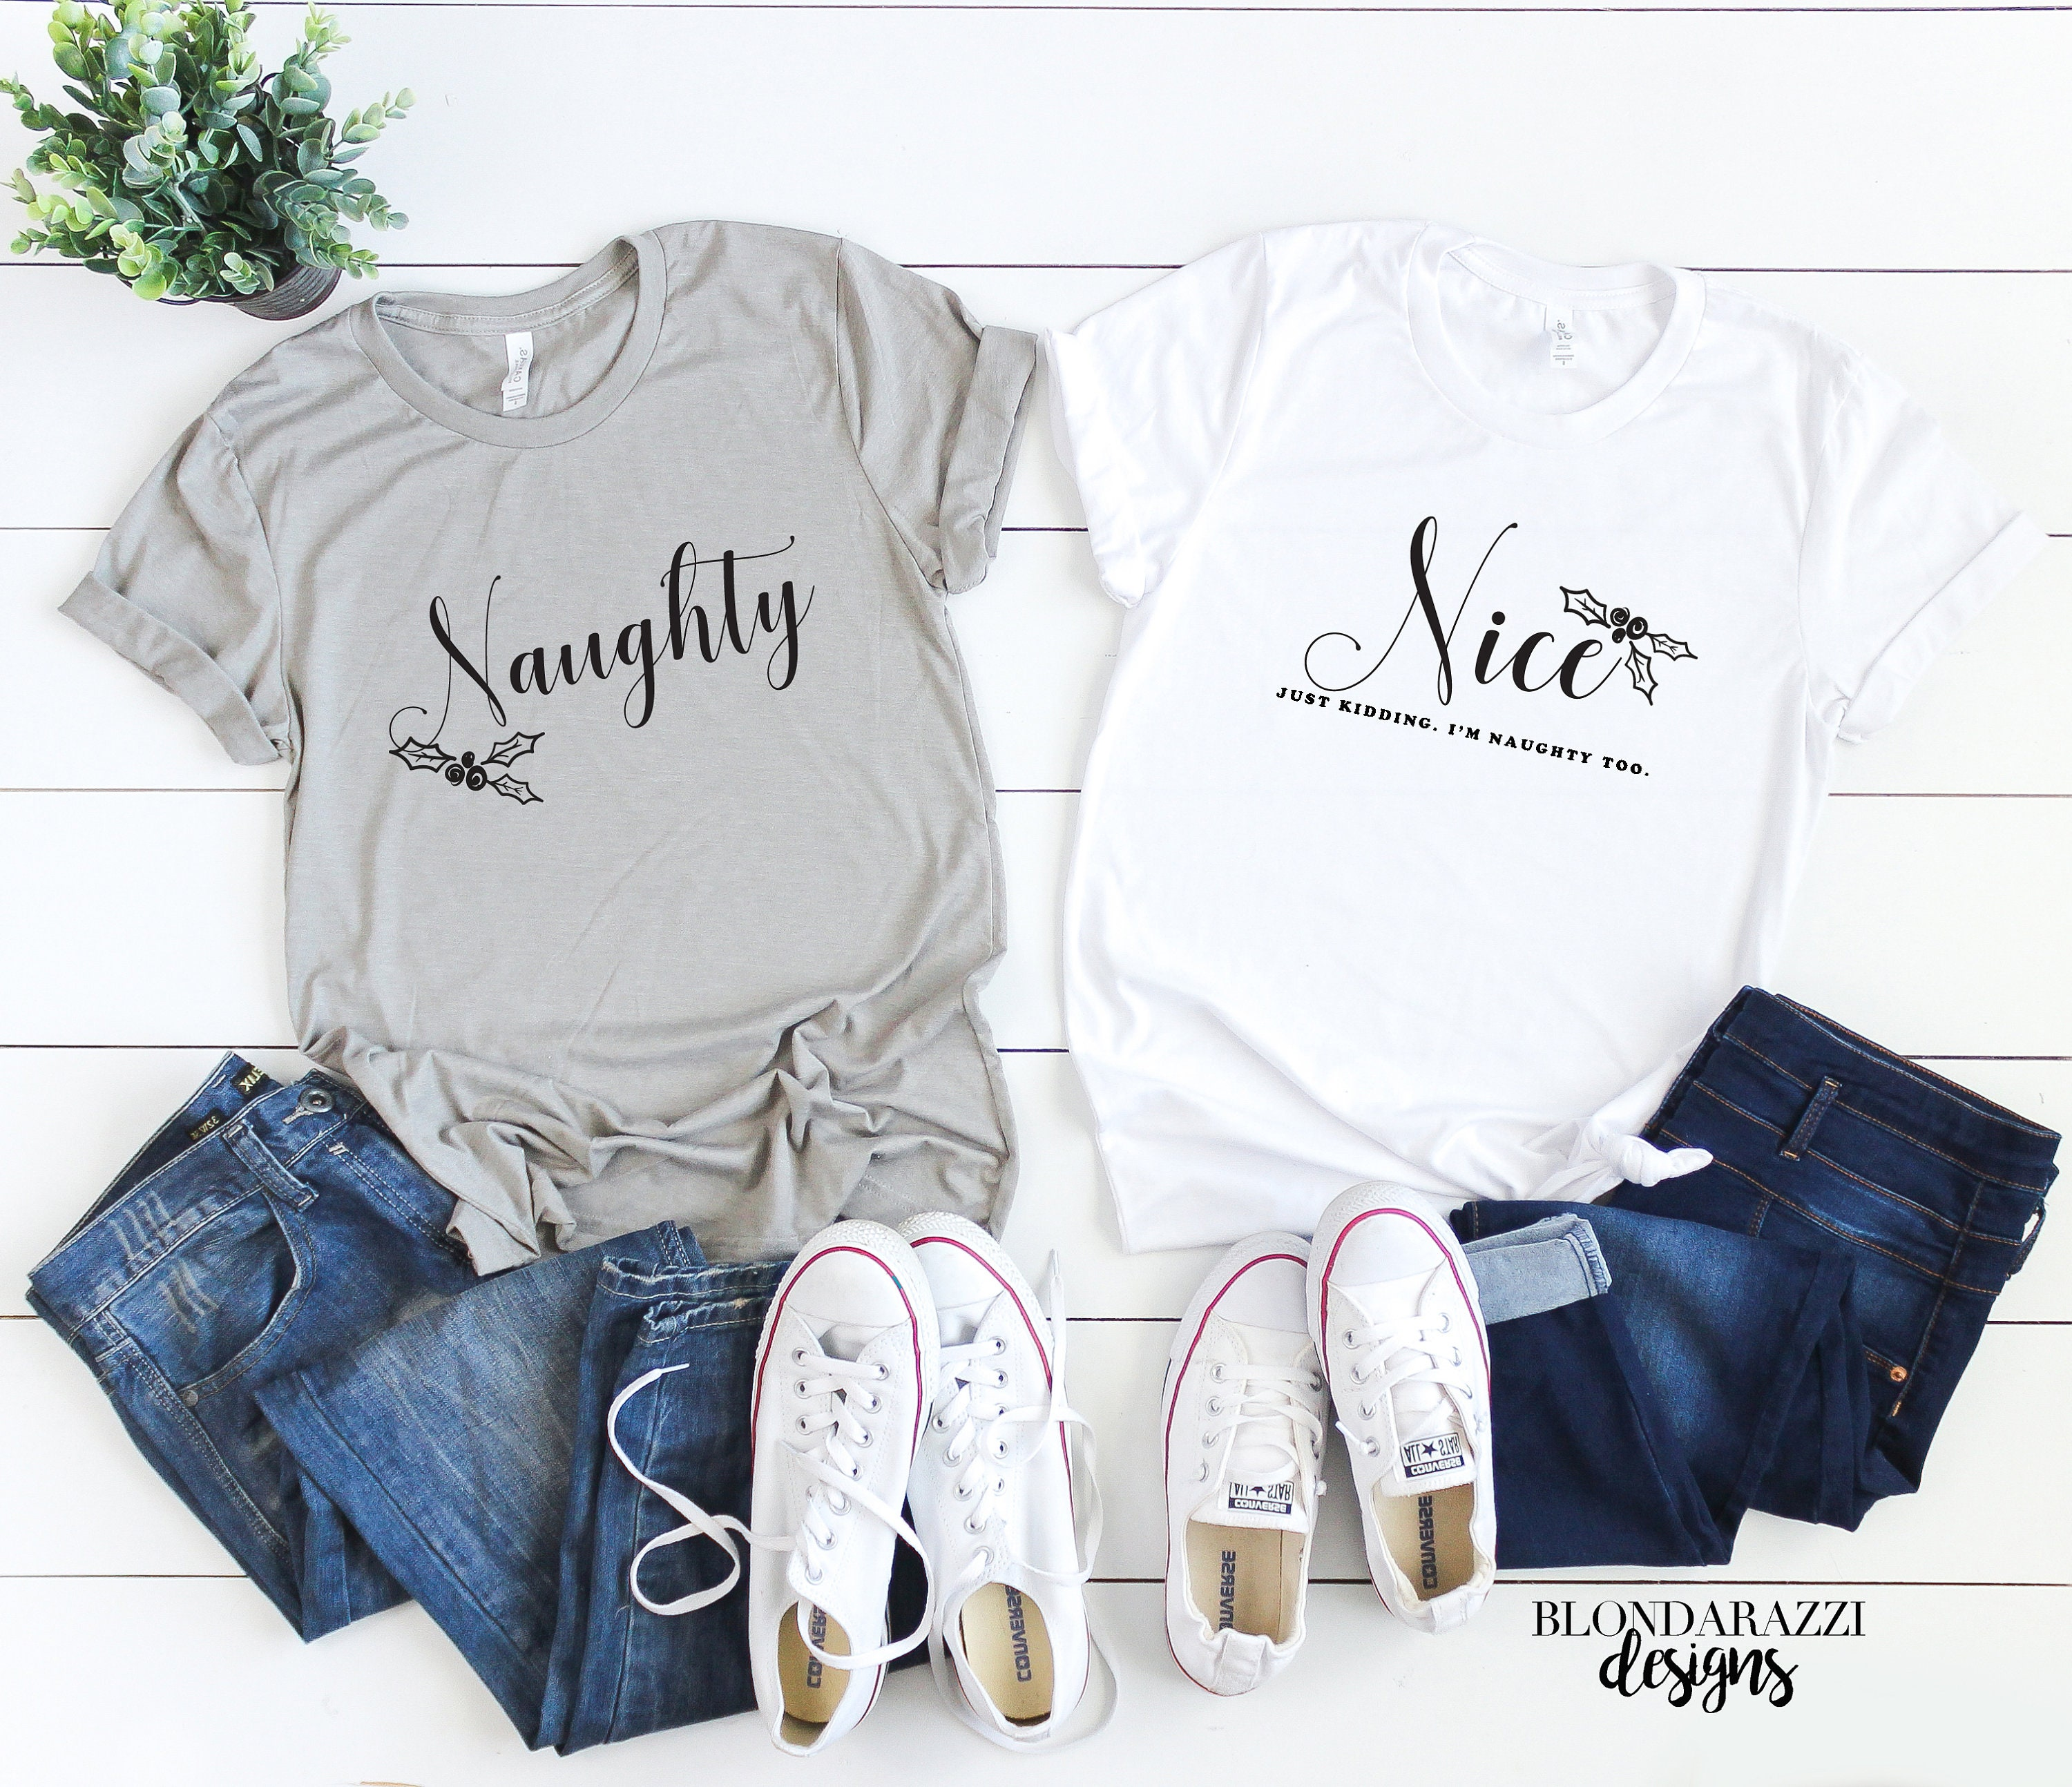 b2acd0cee Matching Funny Naughty and Nice Christmas Shirts for Mom and Dad Mr. and  Mrs. Best Friends Sisters Cousins or Family